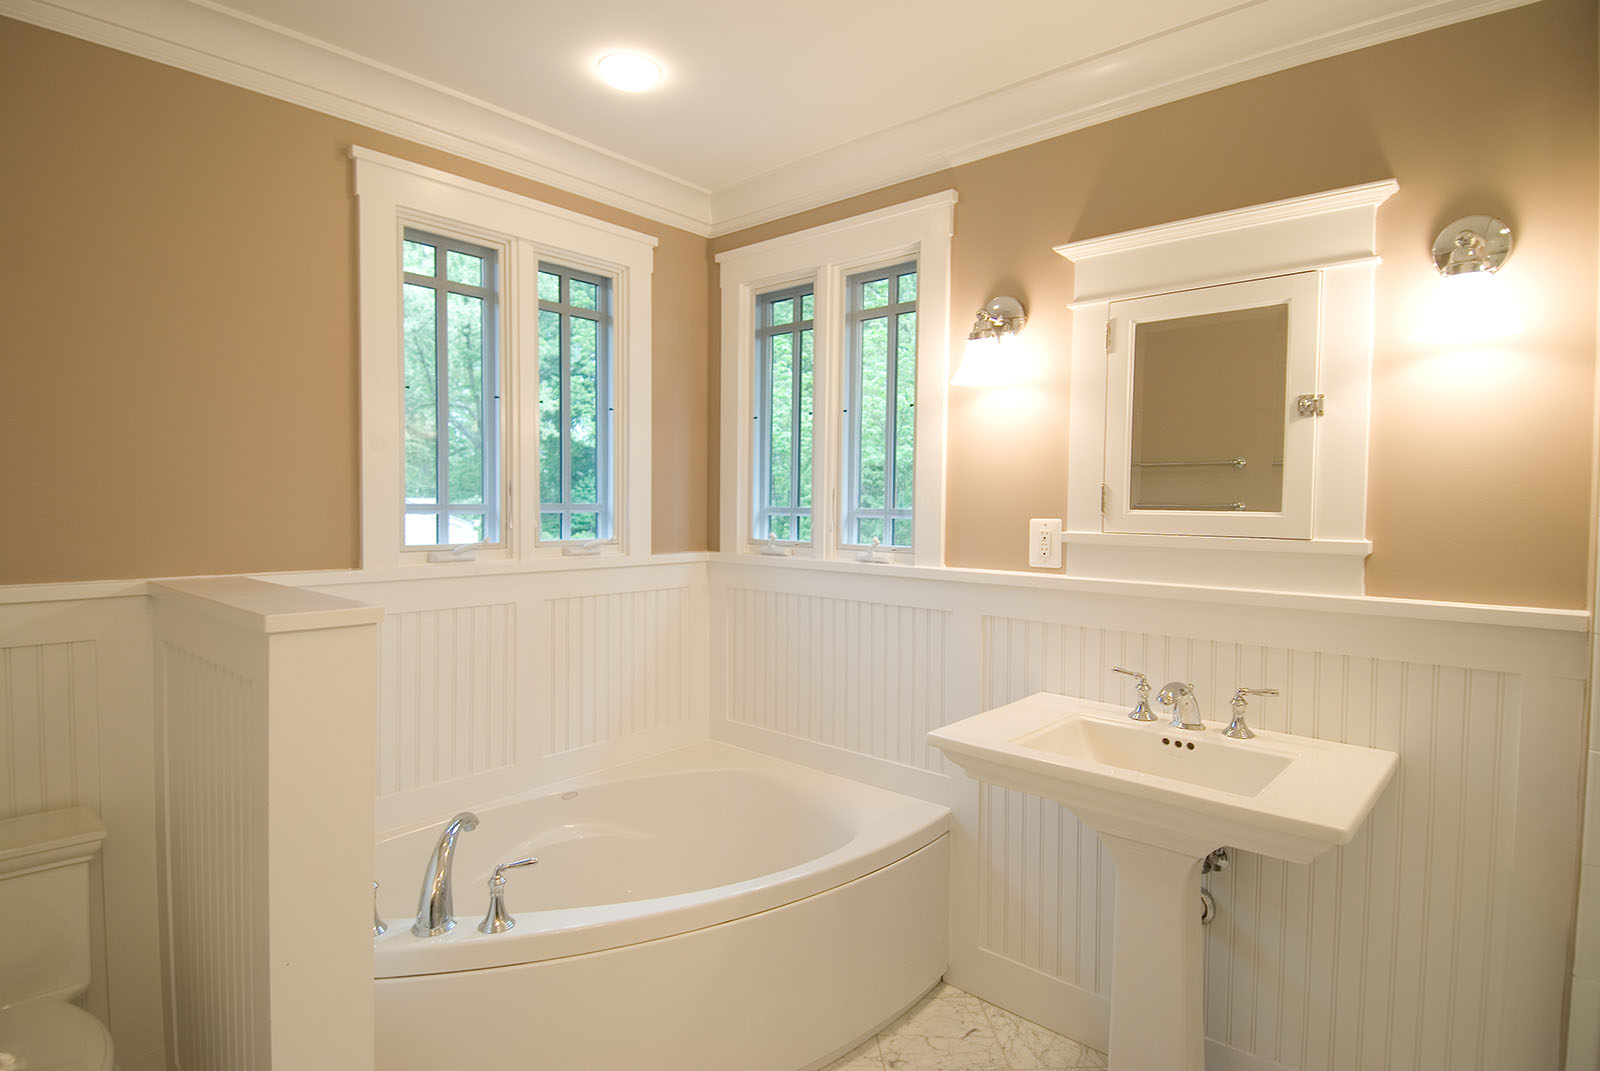 Old Bathroom Remodel How To Design Remodel A Small Bathroom - How to remodel an old bathroom